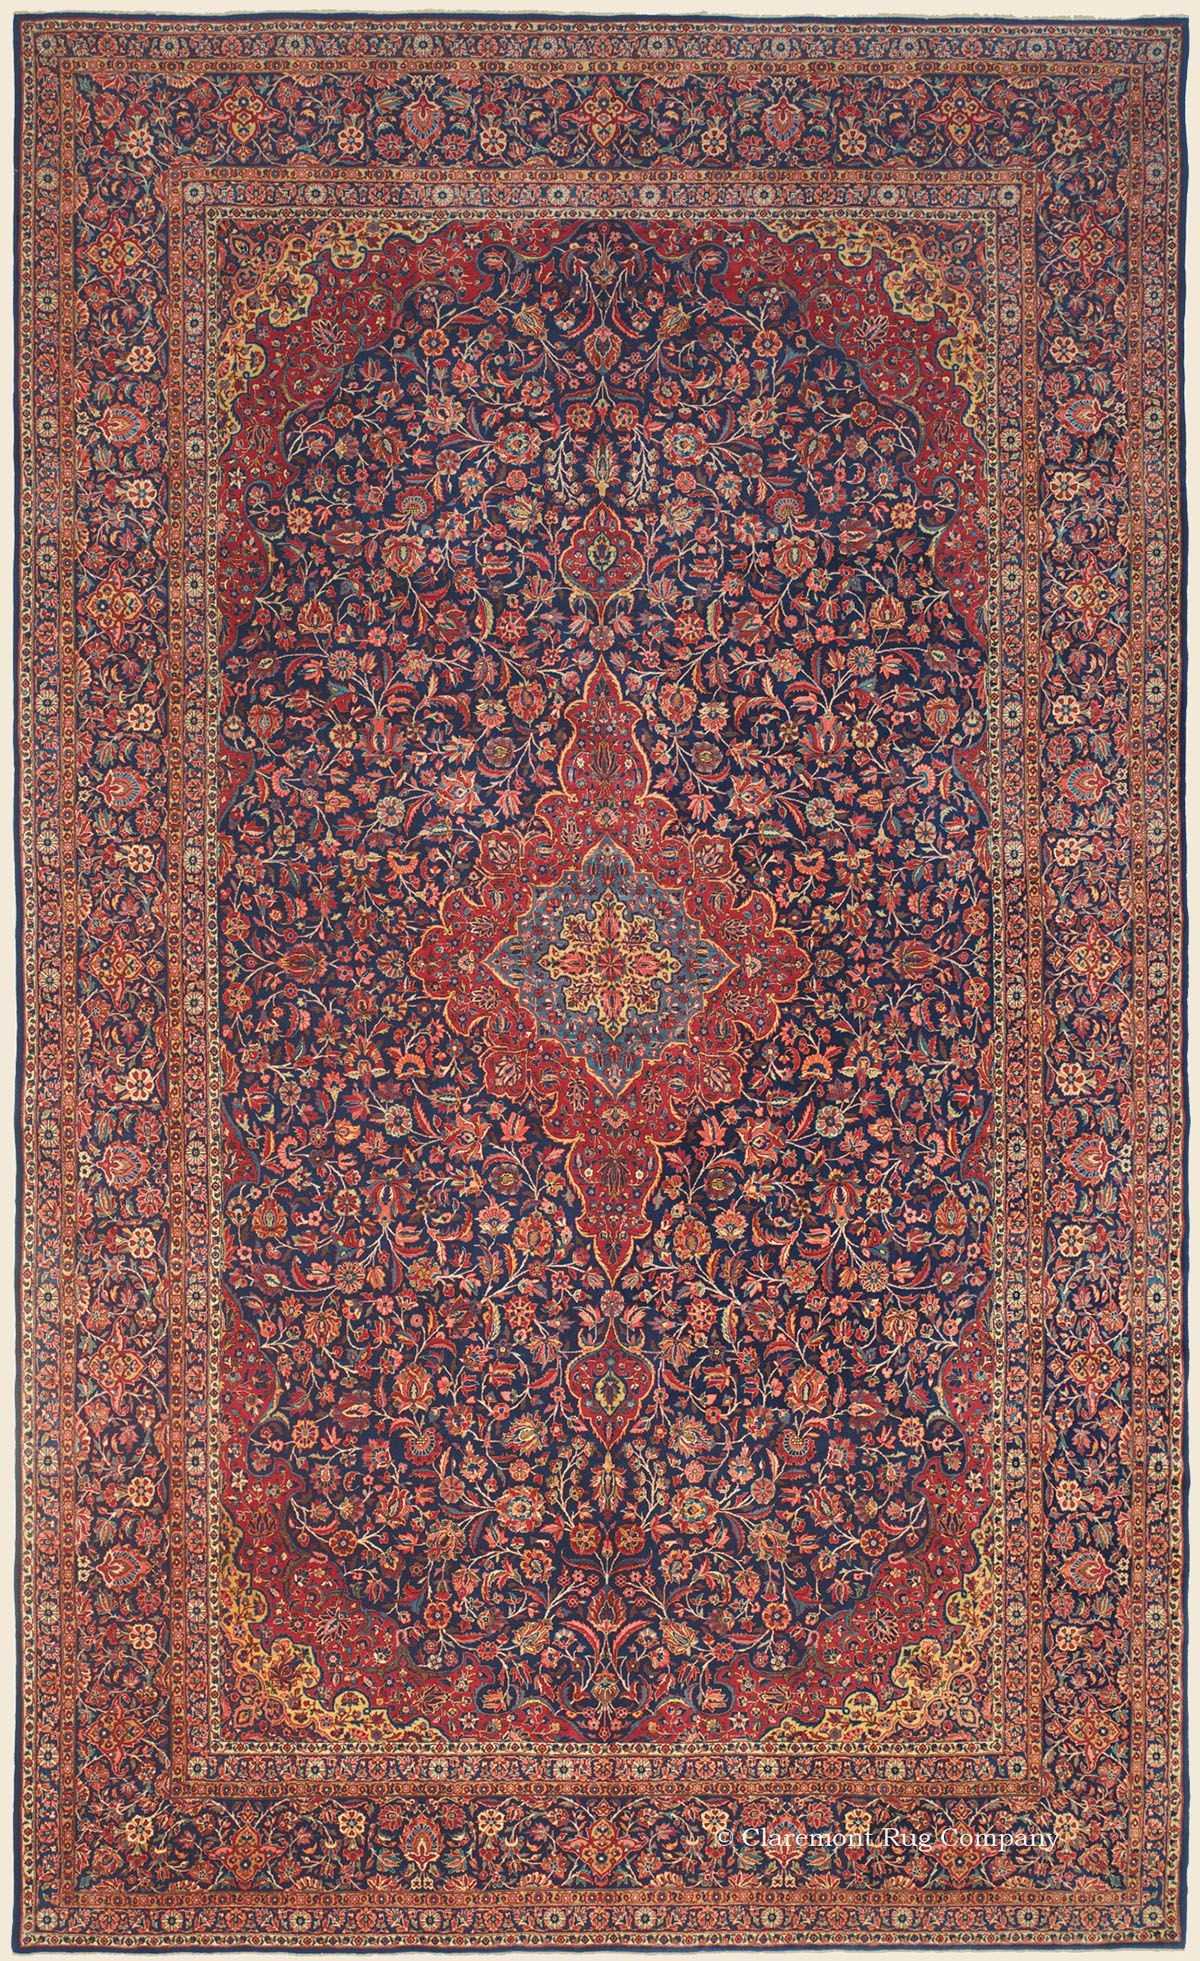 Kashan Central Persian Antique Rug 10 1 X 16 7 Circa 1925 Claremont Rug Company Persian Carpet Rugs Kashan Rug